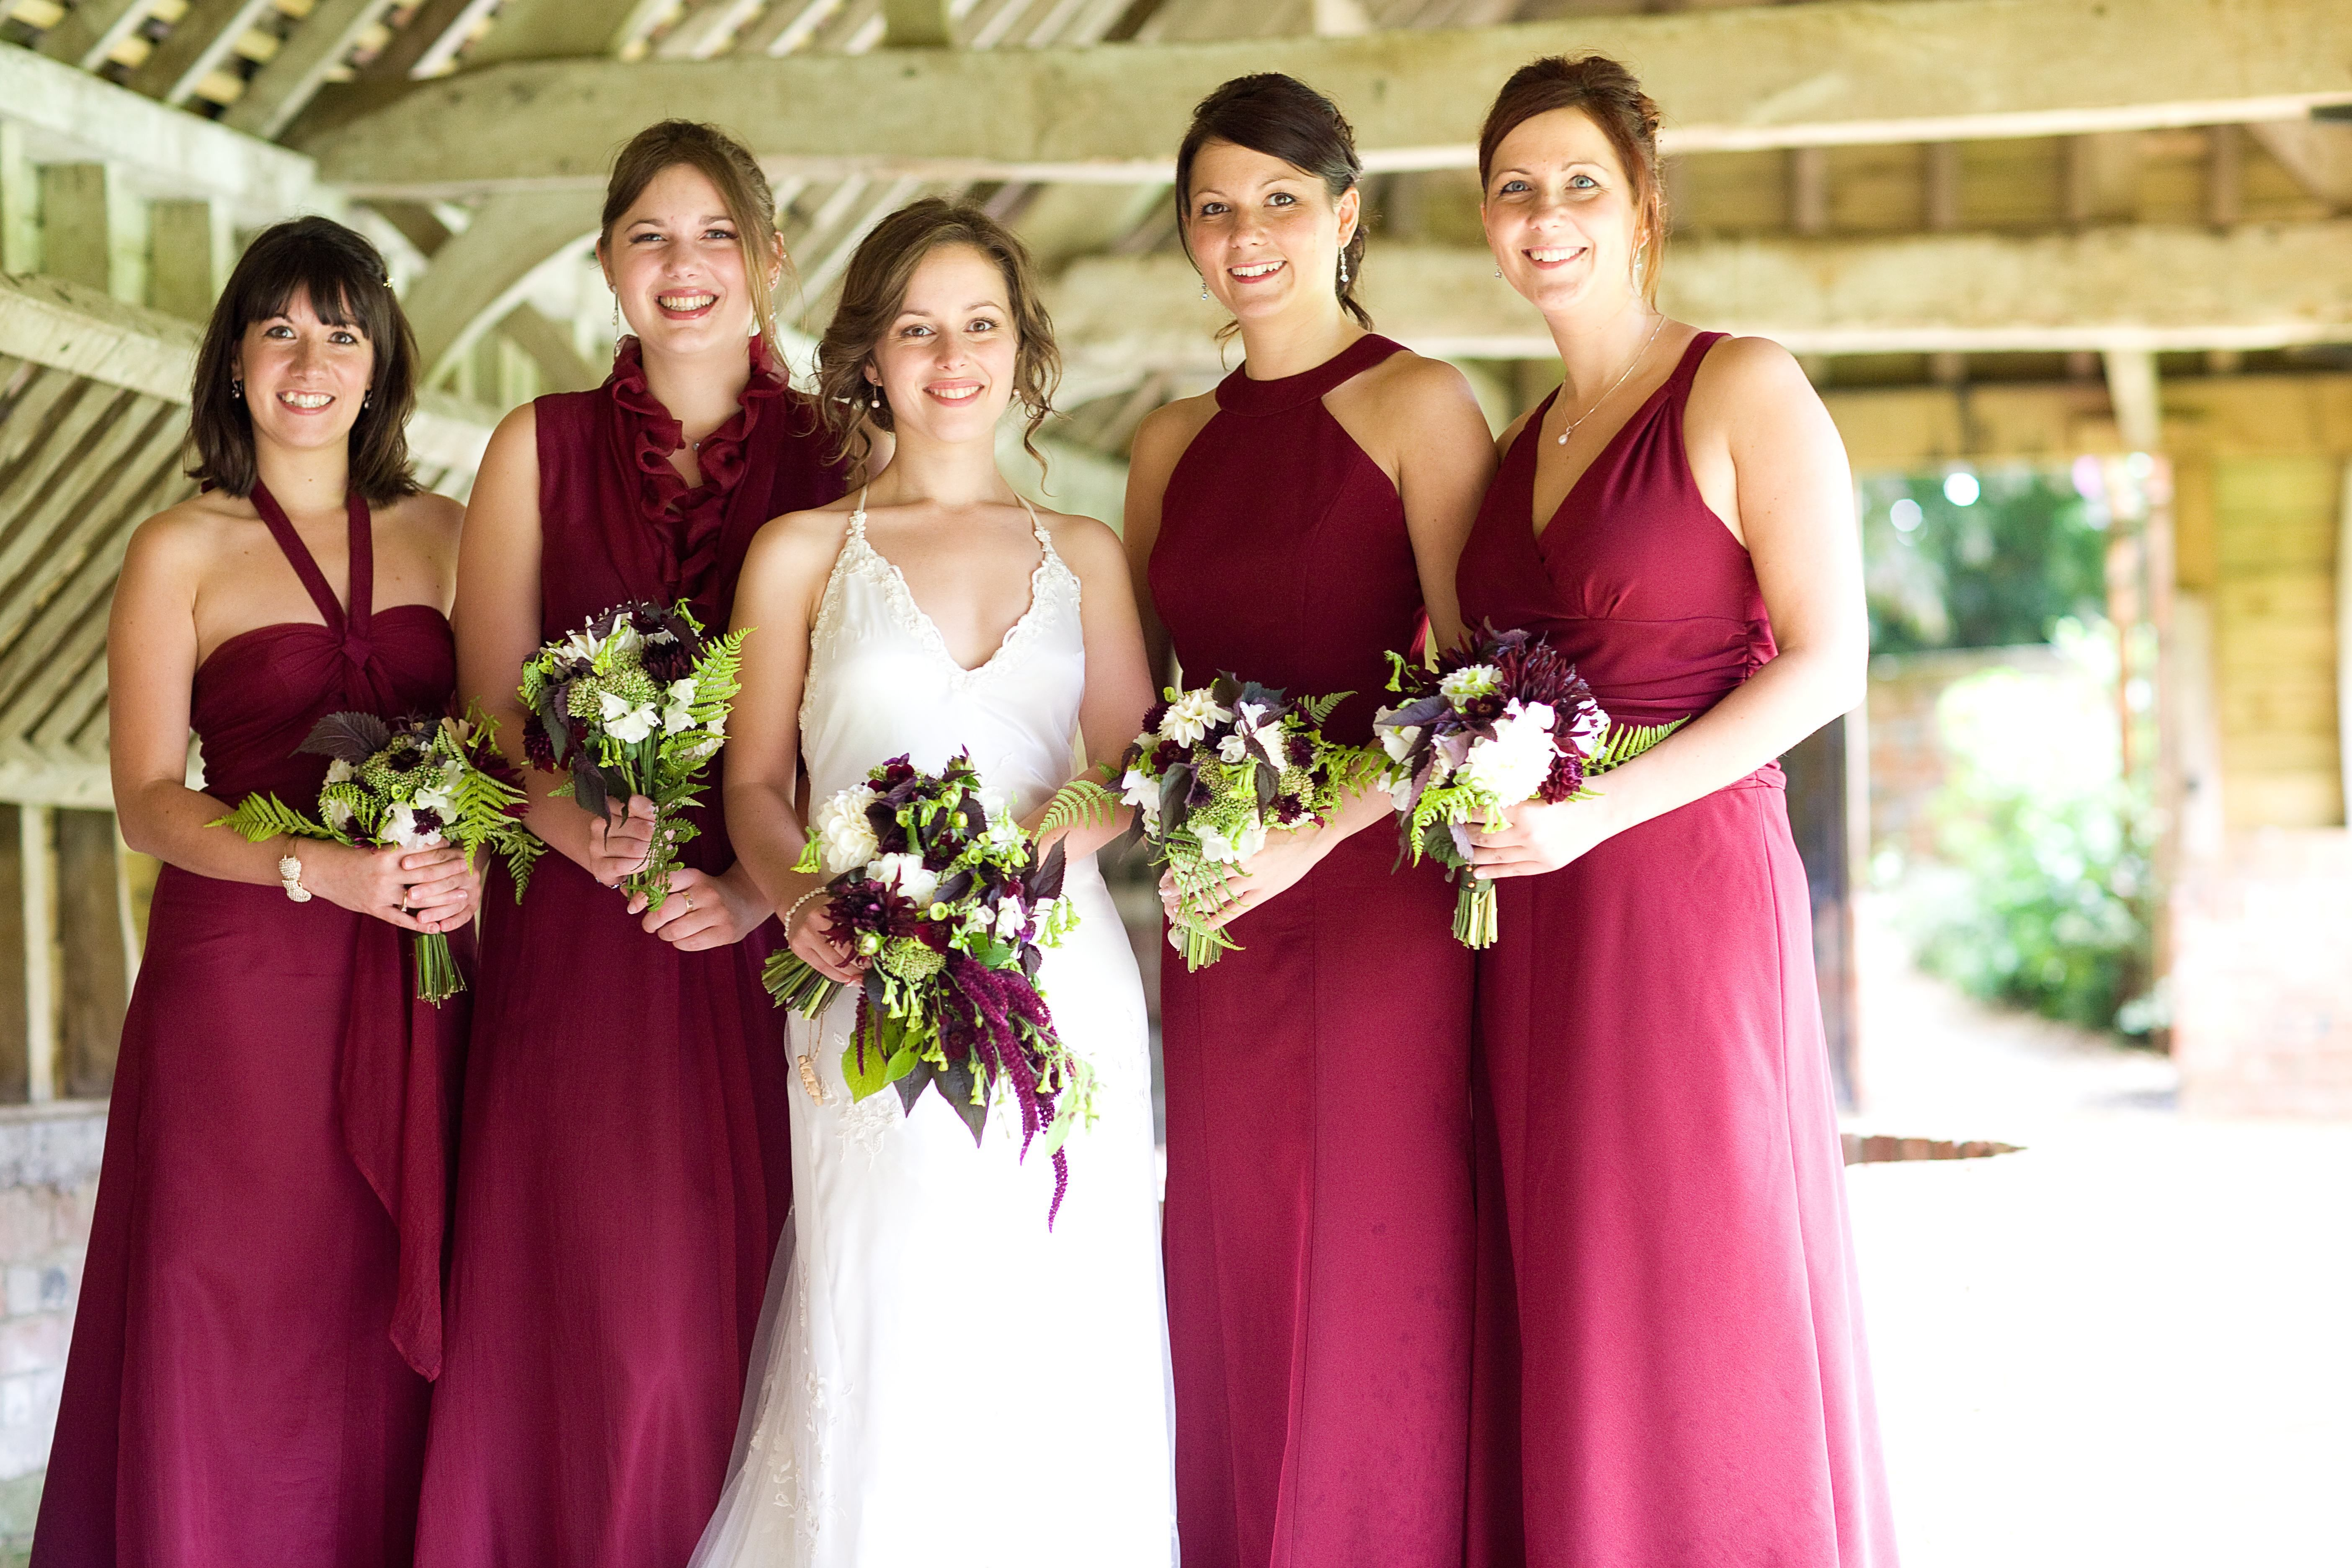 Chocolate and cosmos bouquets with burgundy bridesmaid dresses chocolate and cosmos bouquets with burgundy bridesmaid dresses lovely fall wedding idea ombrellifo Gallery